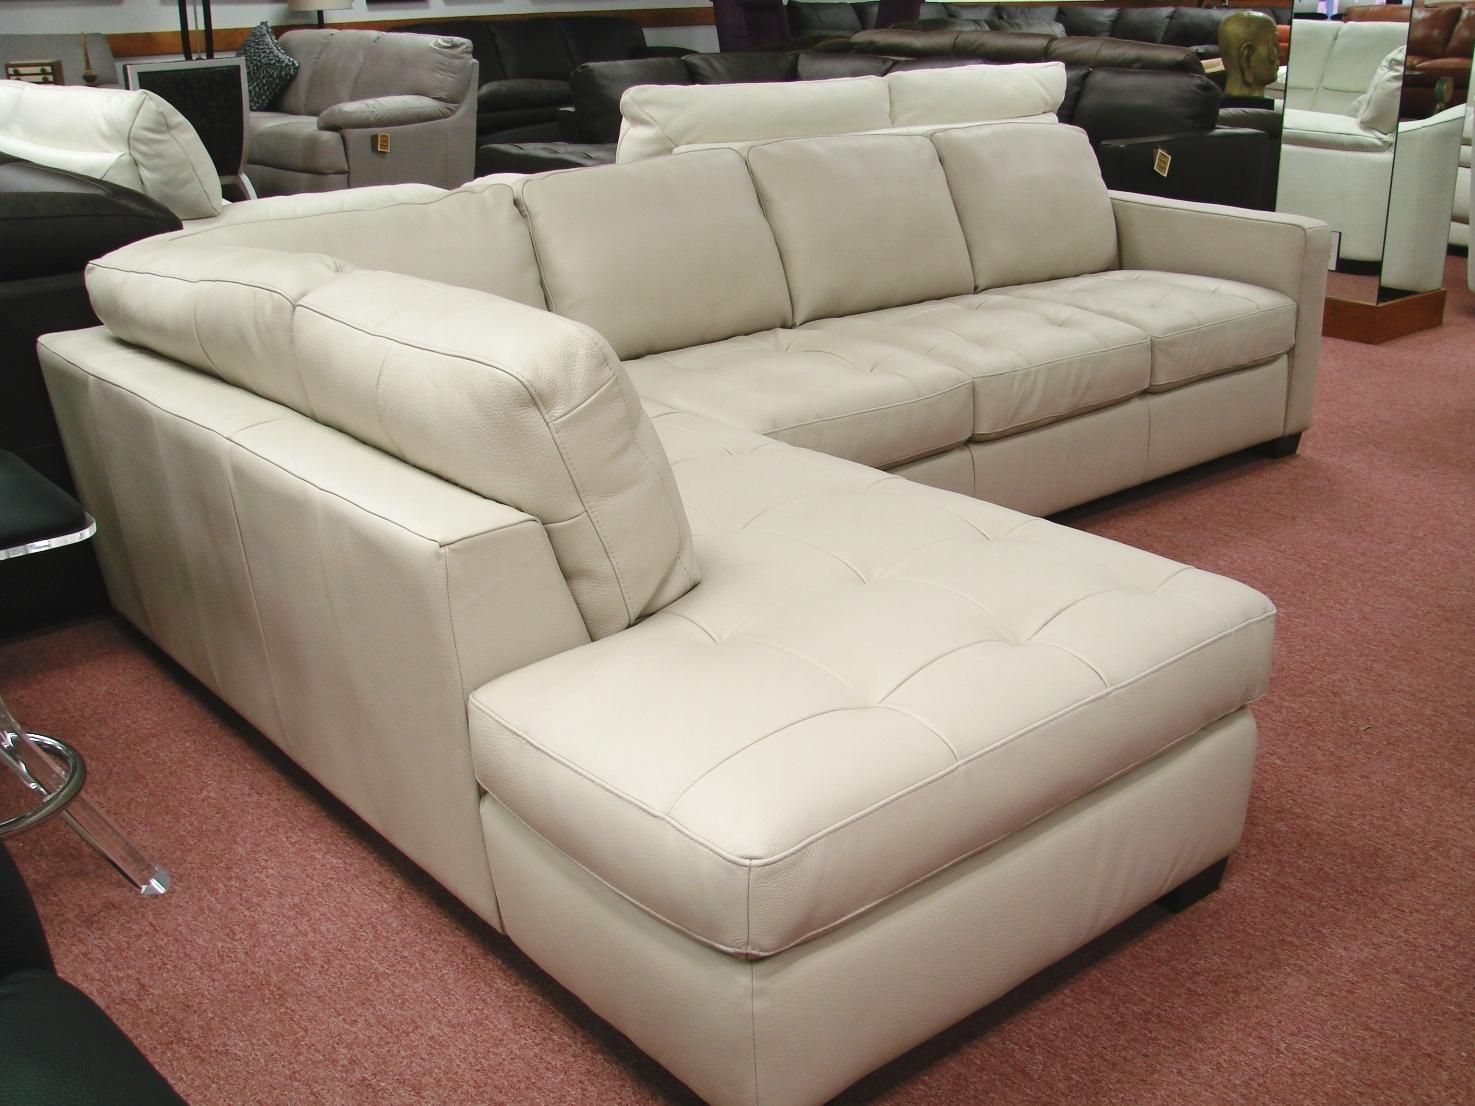 Furniture: Sectional Leather Sofas | Leather Sectionals For Sale Pertaining To Leather Sofa Sectionals For Sale (Image 8 of 20)